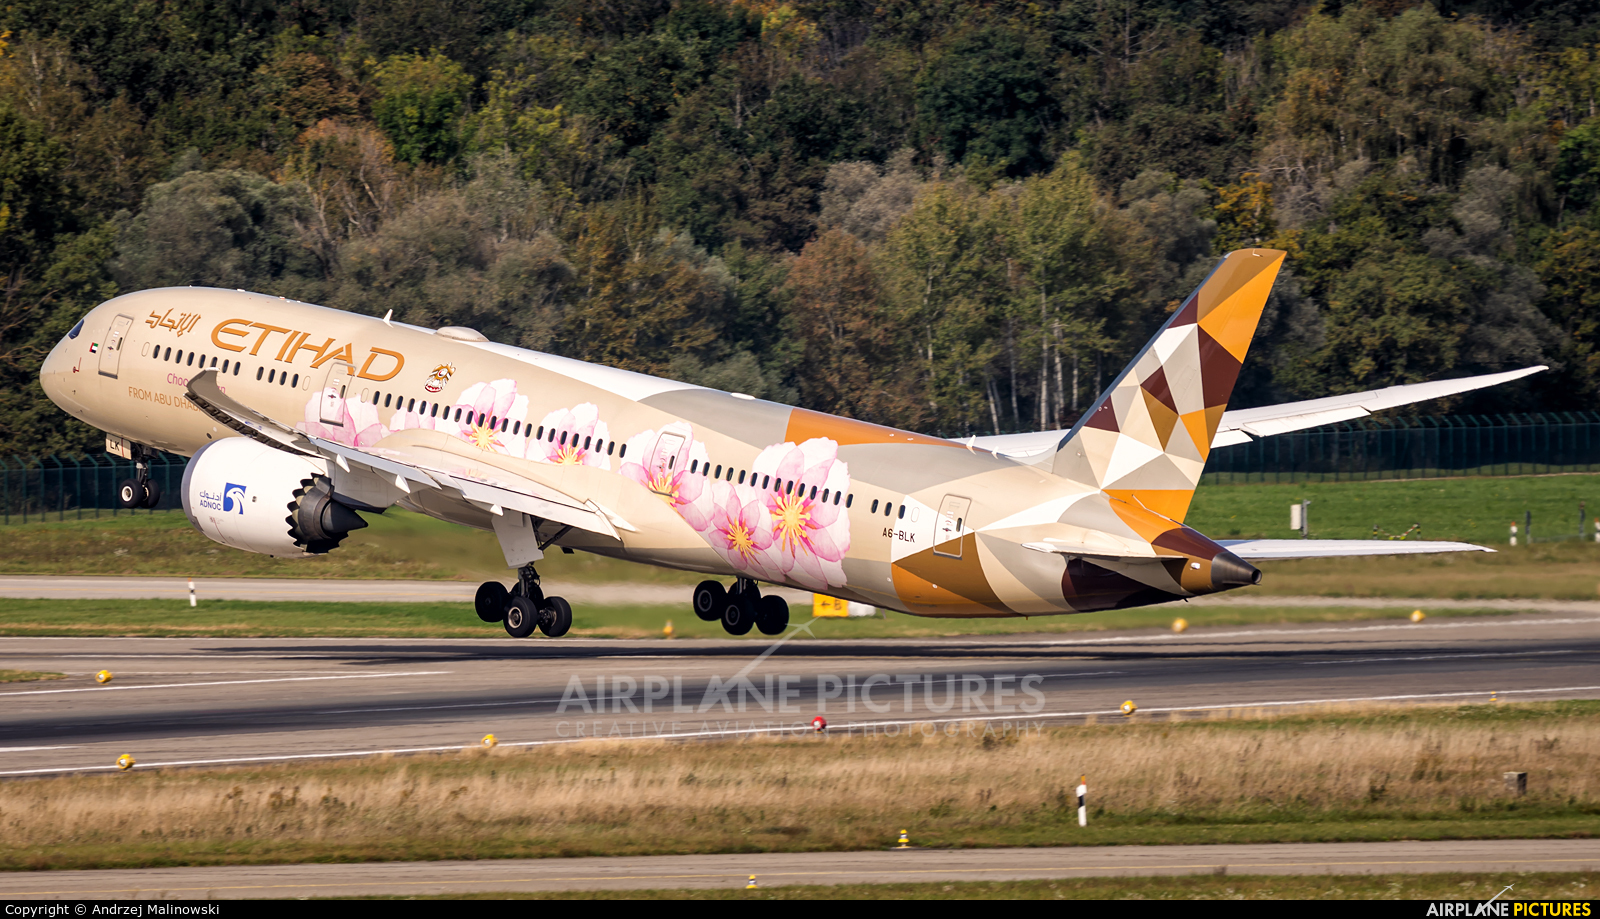 Etihad Airways A6-BLK aircraft at Zurich